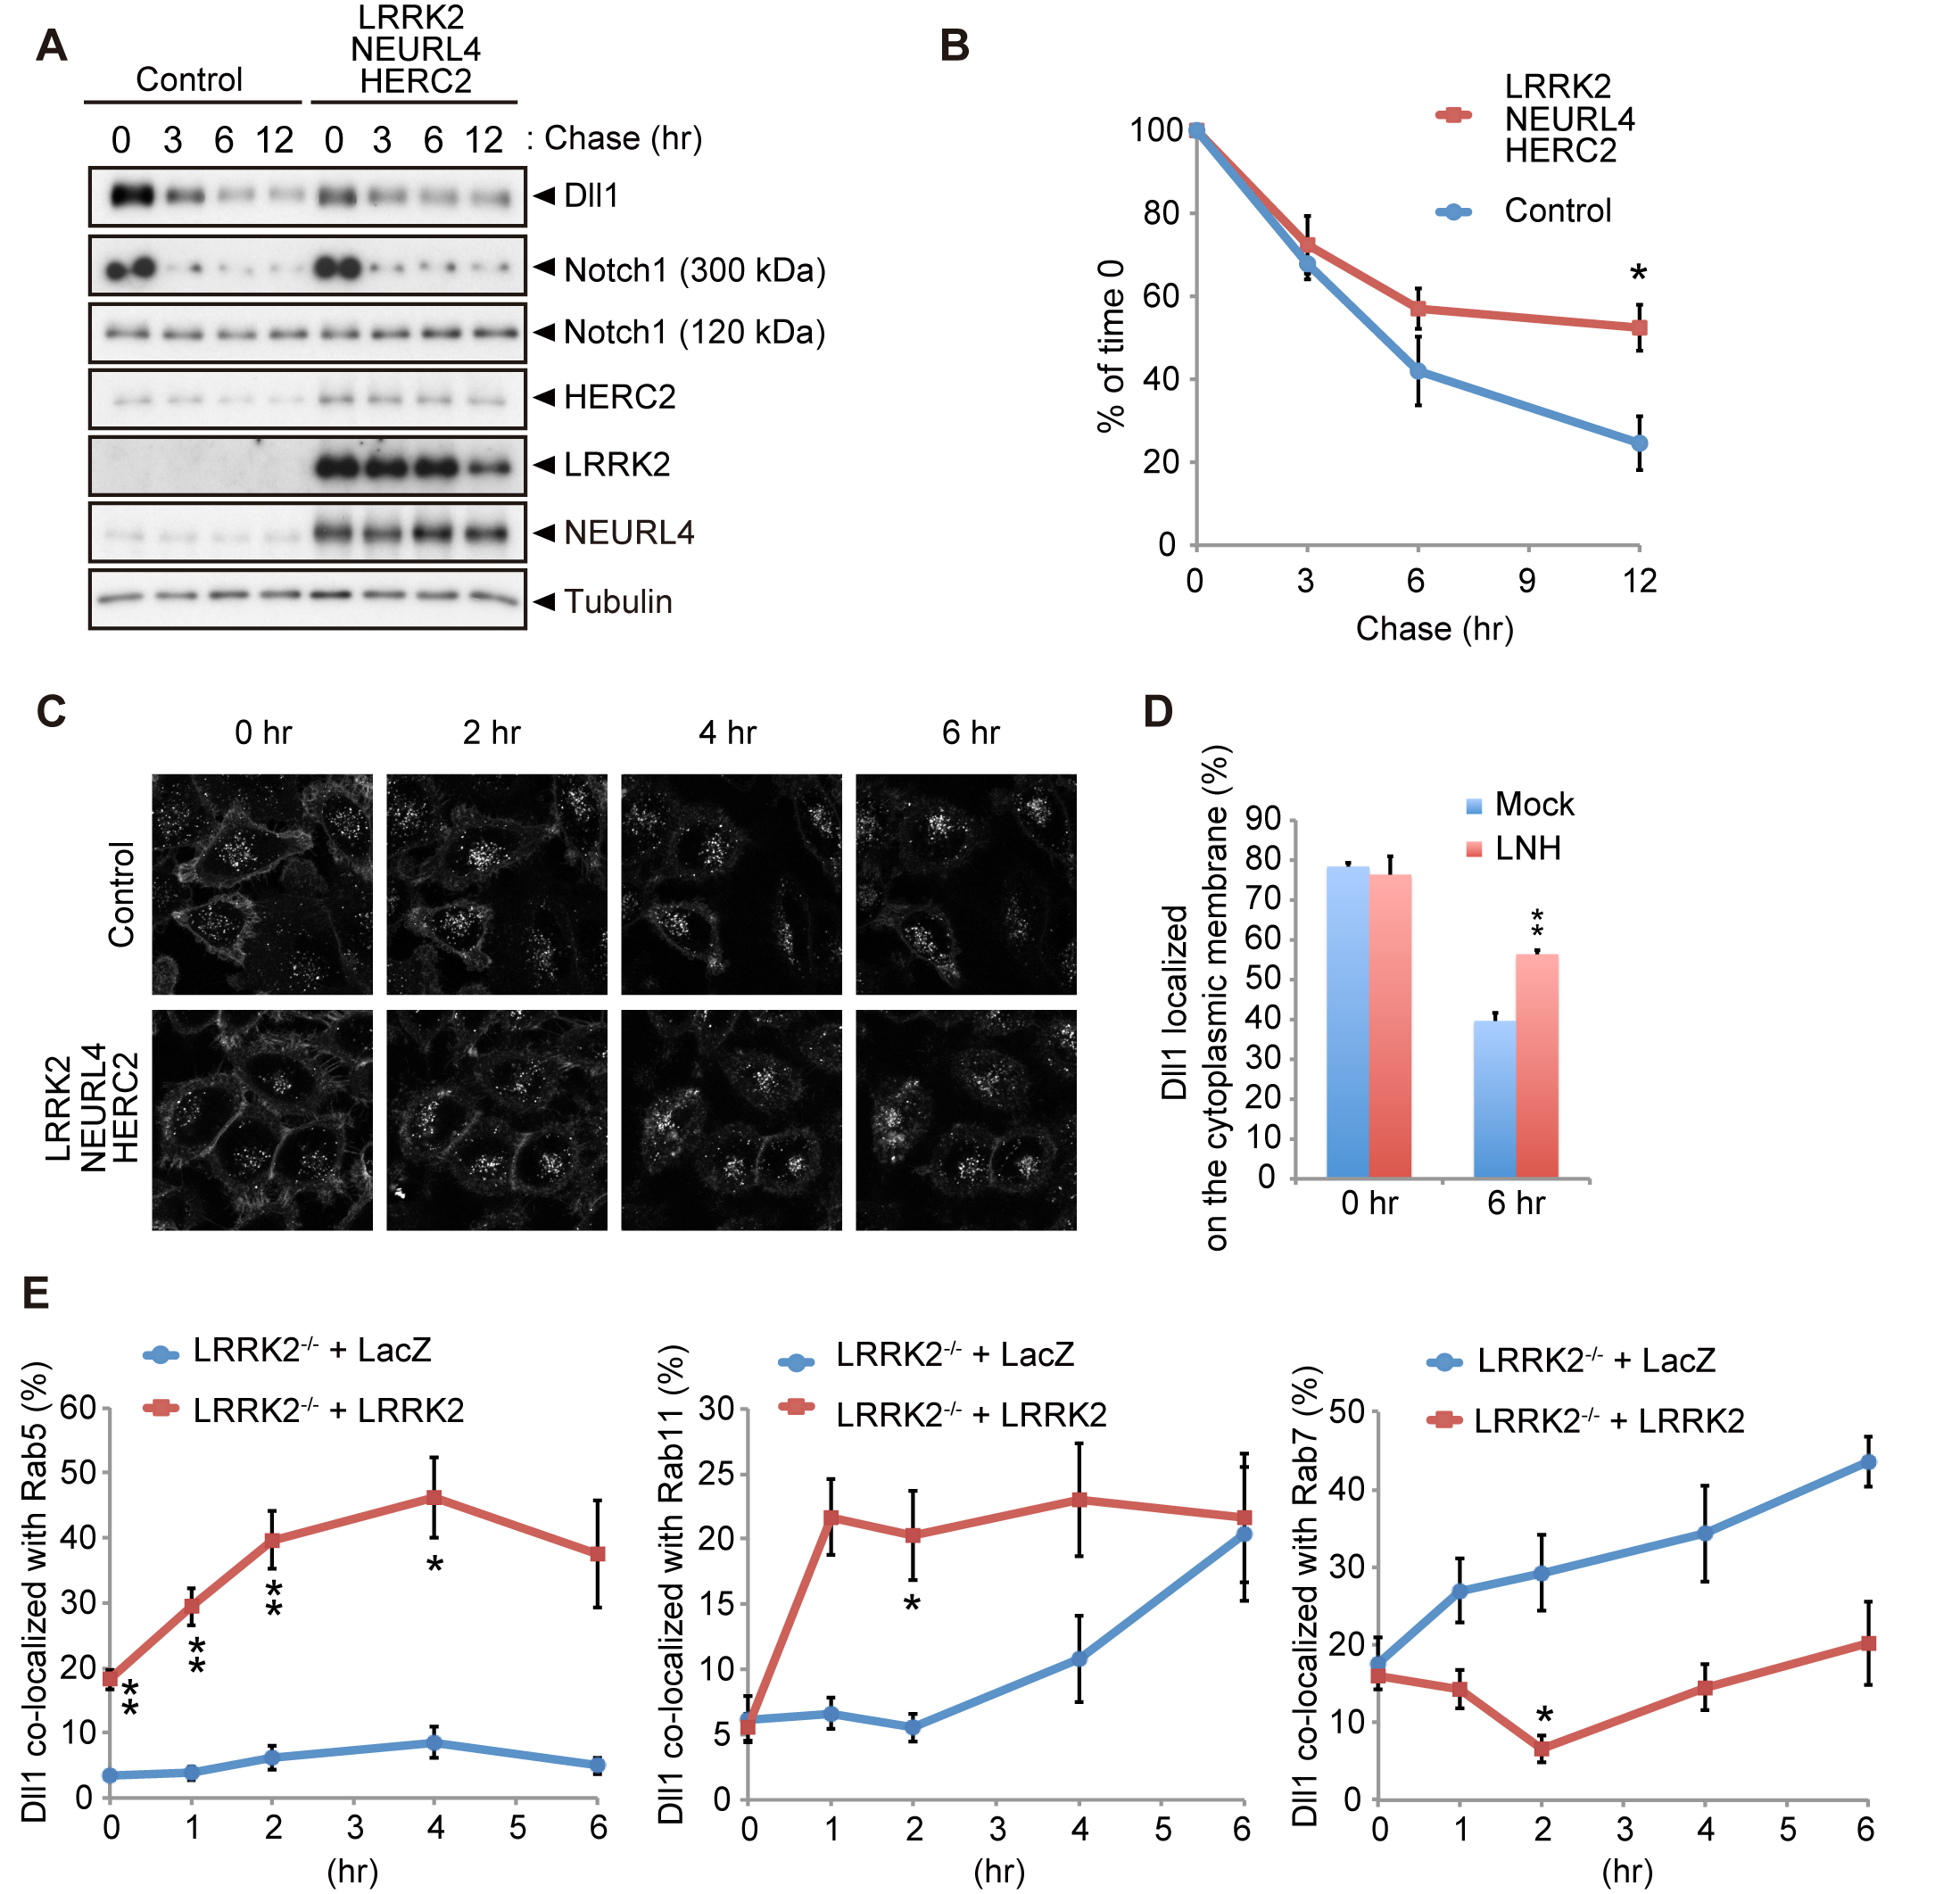 LRRK2 complex modulates Dll1 turnover in the endosomal pathway.